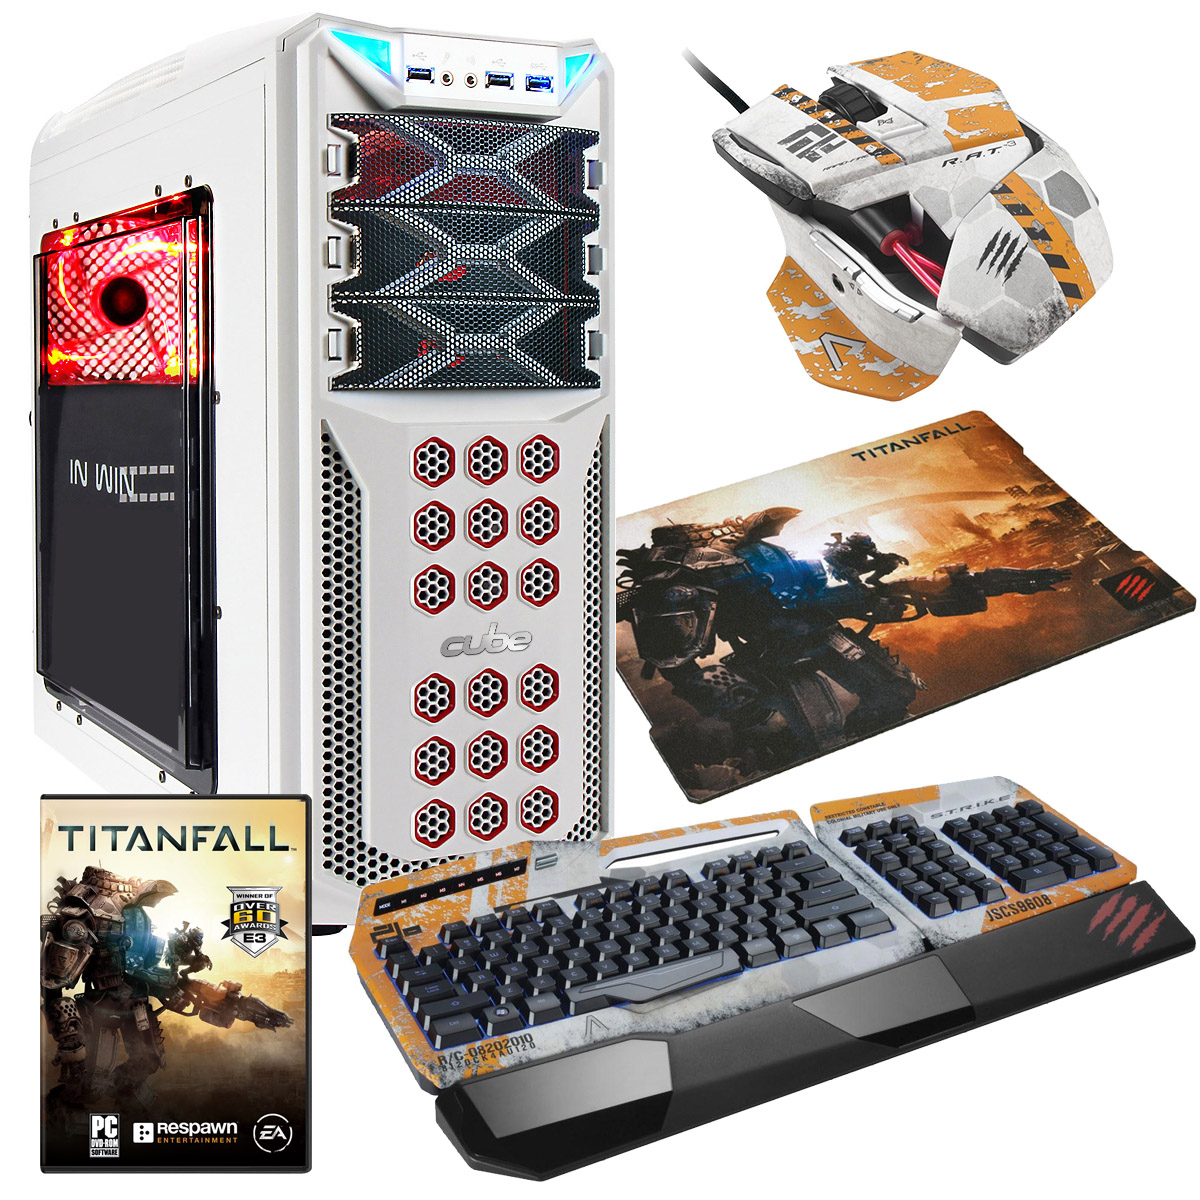 Cube Titanfall Gaming PC Bundle Core i5k with Mad Catz TitanFall Keyboard/Mouse & Surface